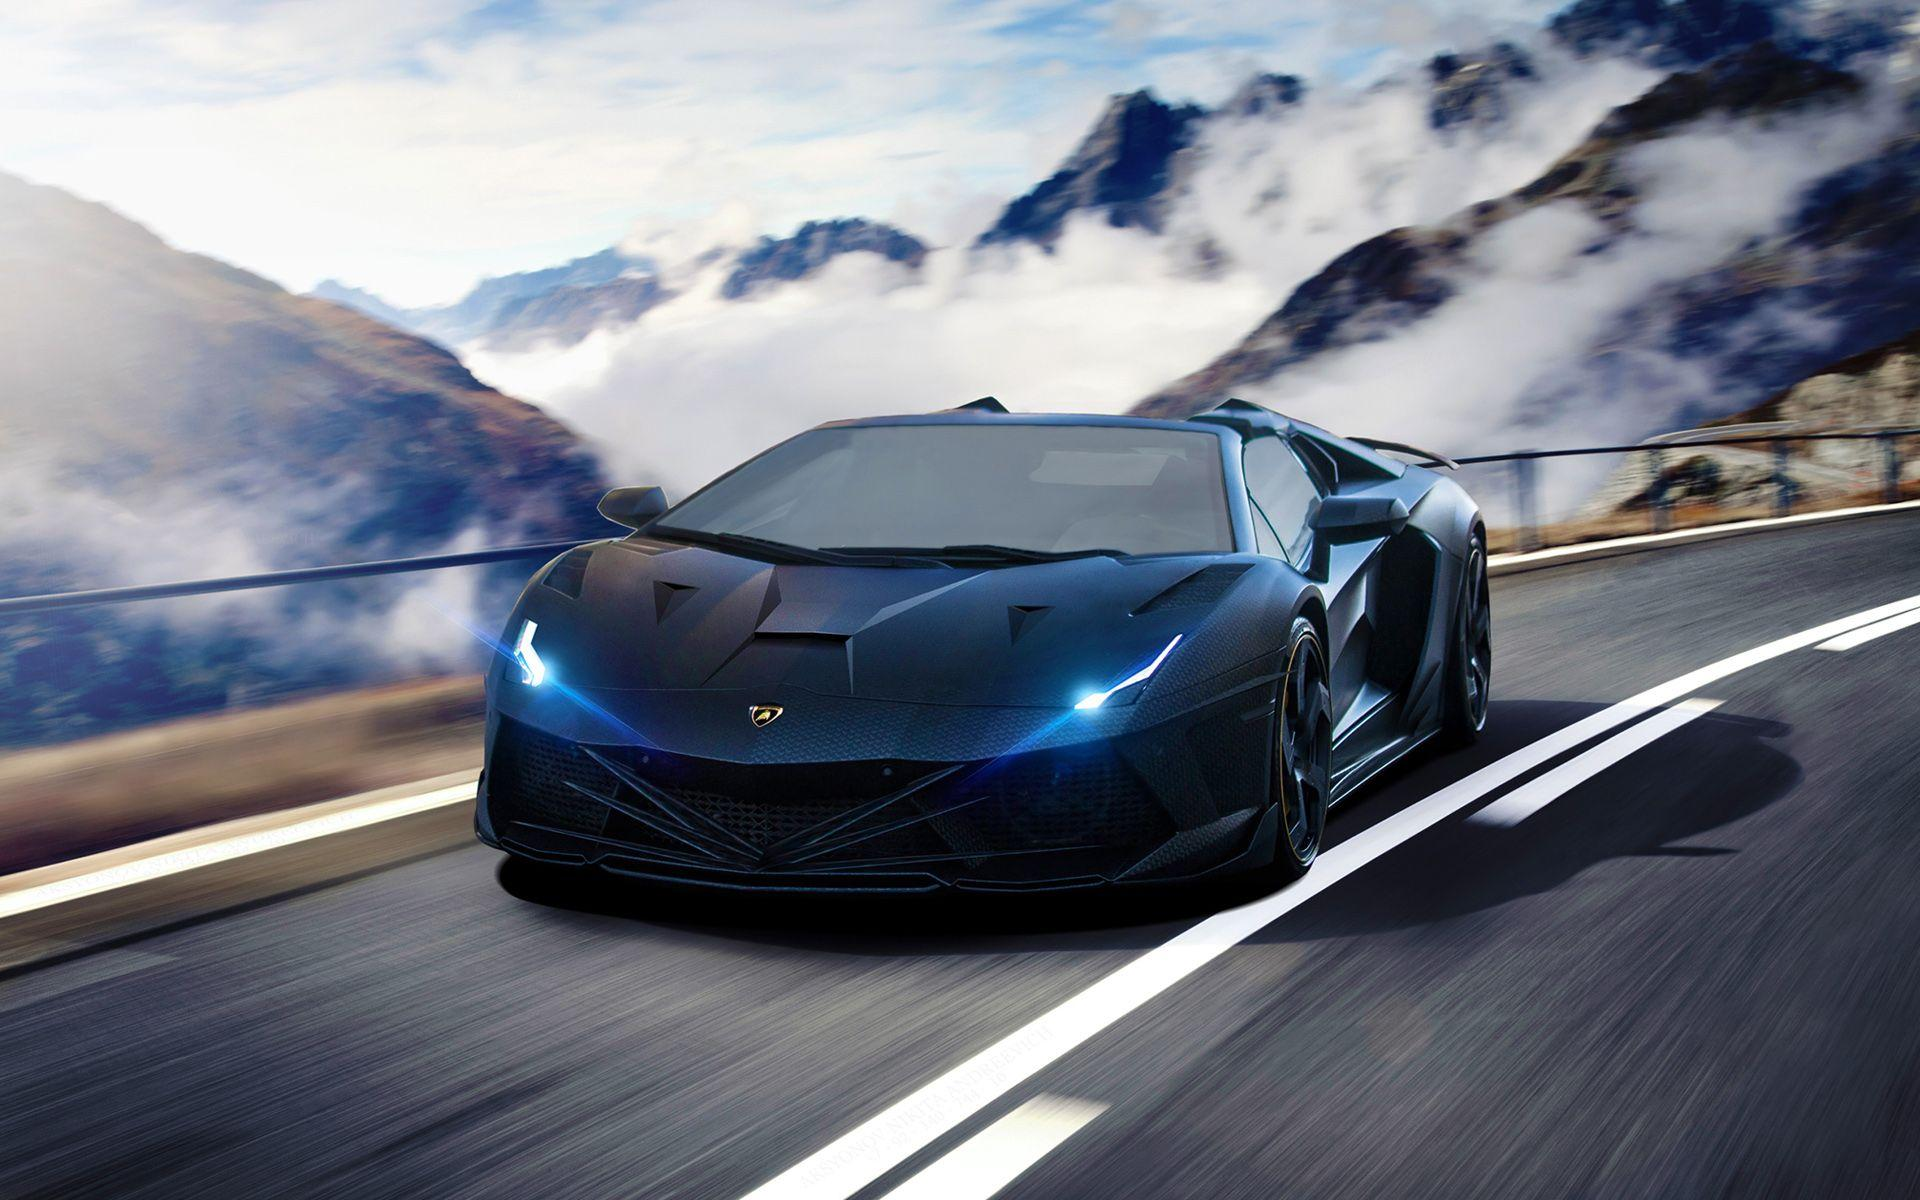 Super Car Hd Wallpapers Wallpaper Cave